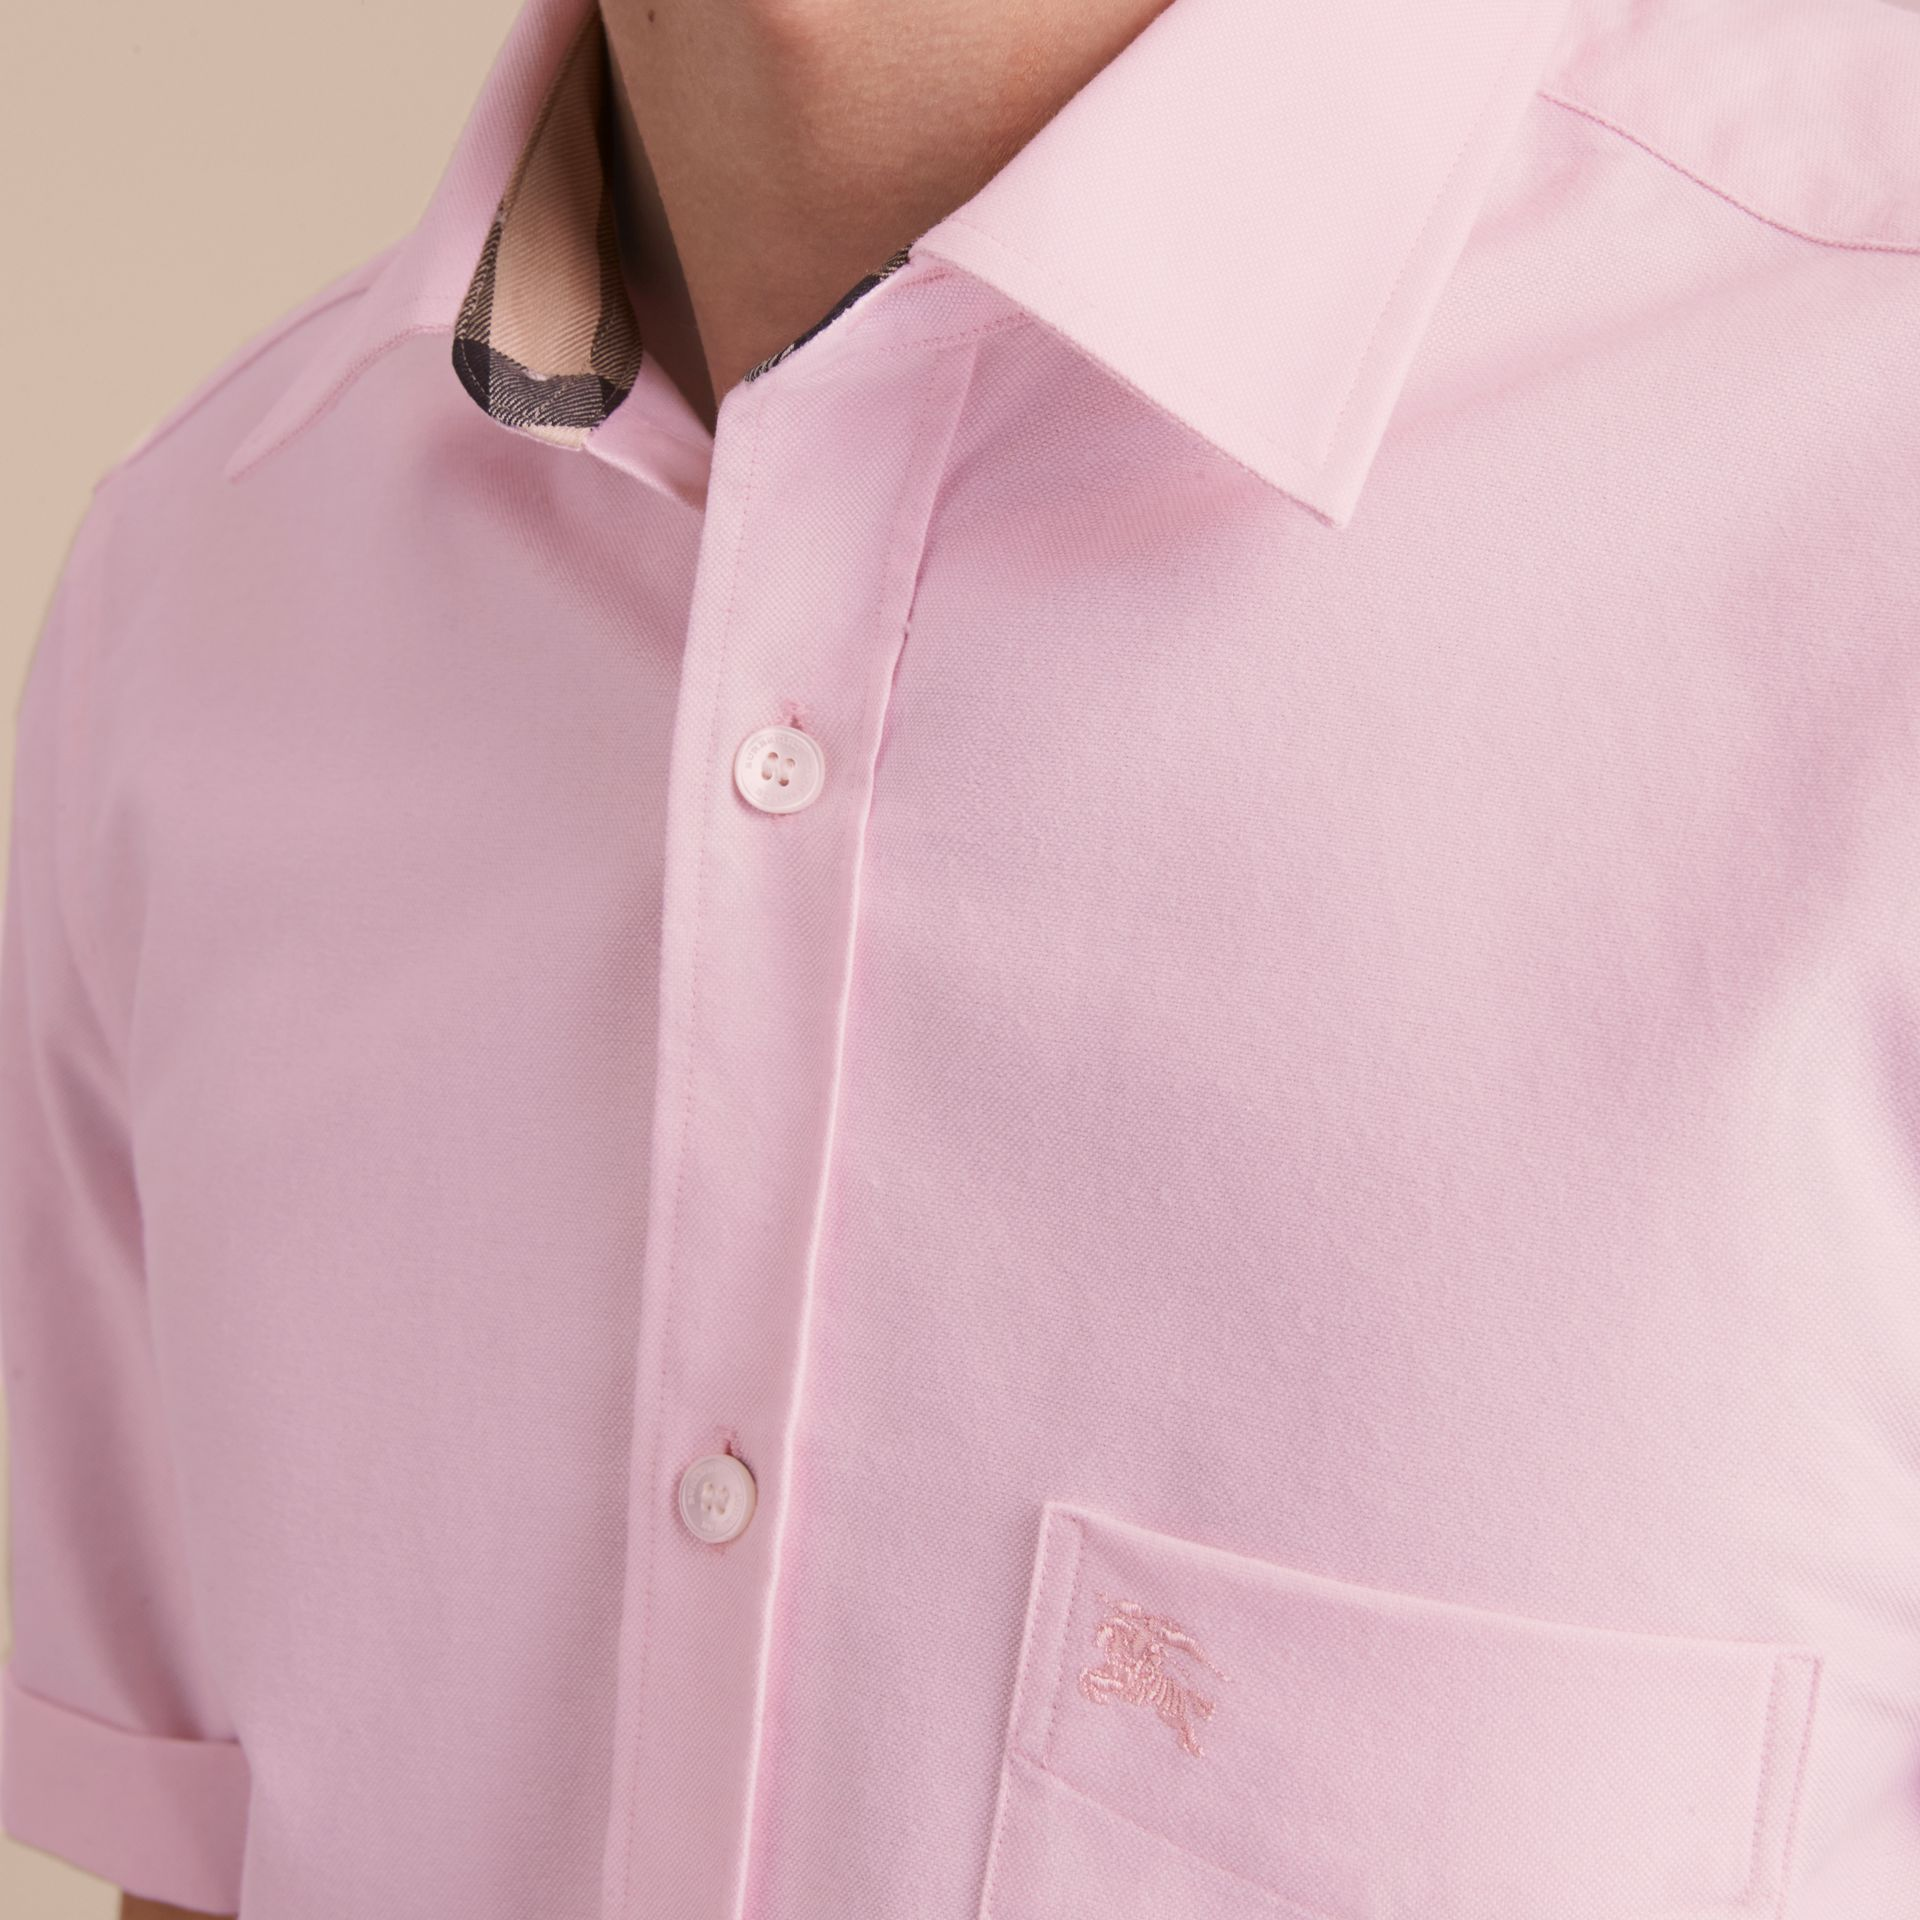 Check Detail Short-Sleeved Cotton Oxford Shirt in Pale Pink - Men | Burberry - gallery image 5